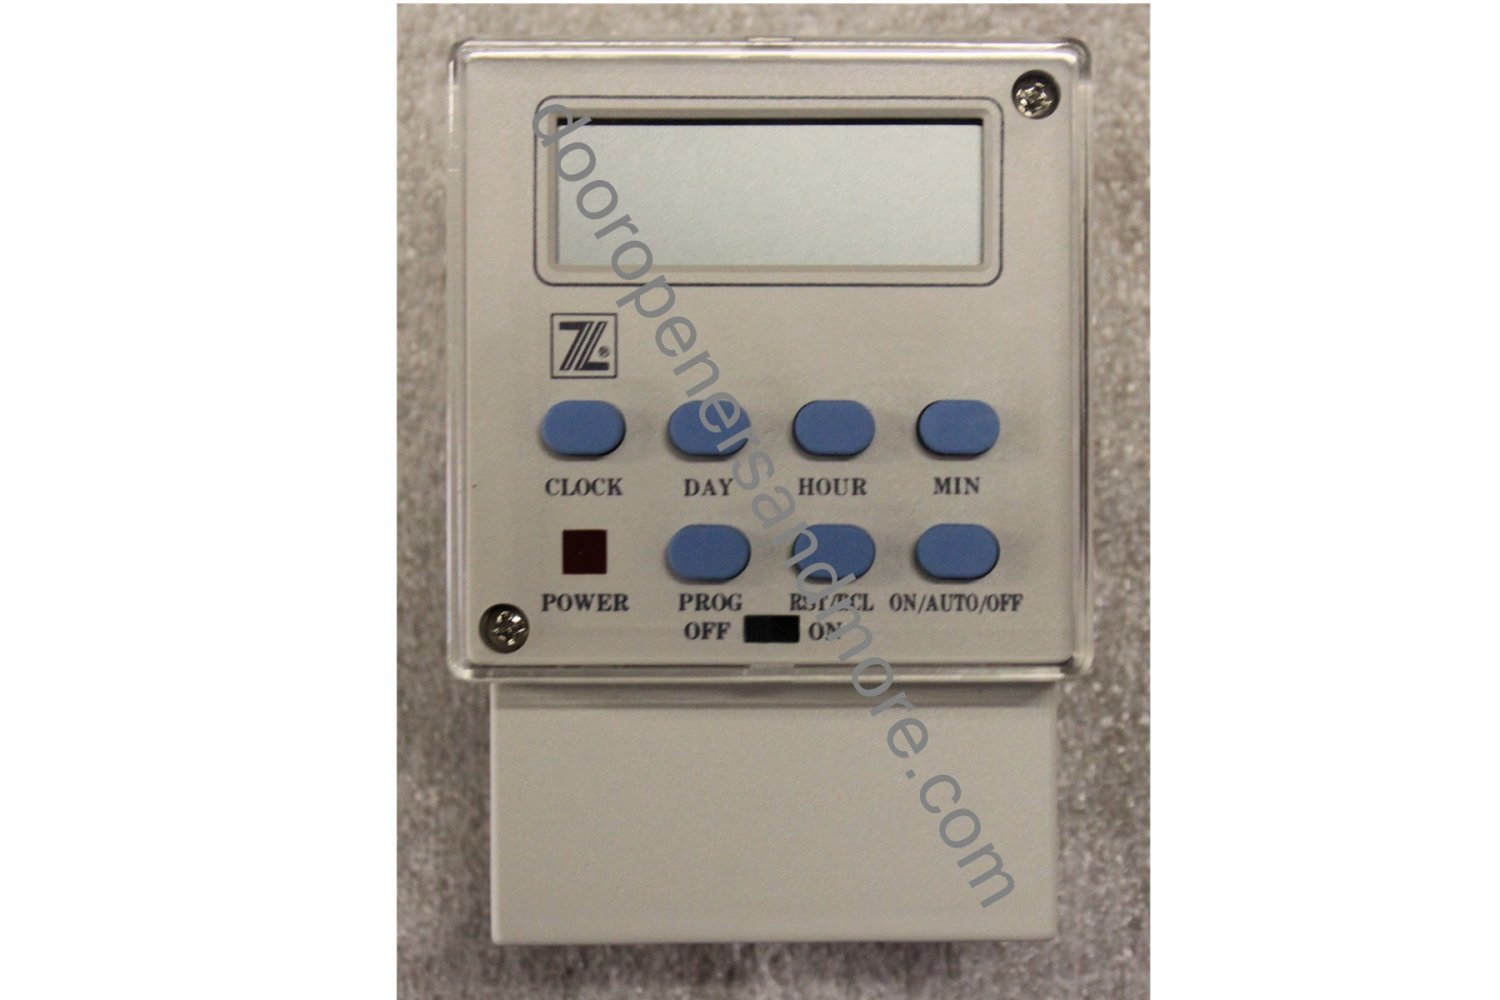 EMX DTM 9 Programmable Open Close Electronic Timer 24V Power 7 Day